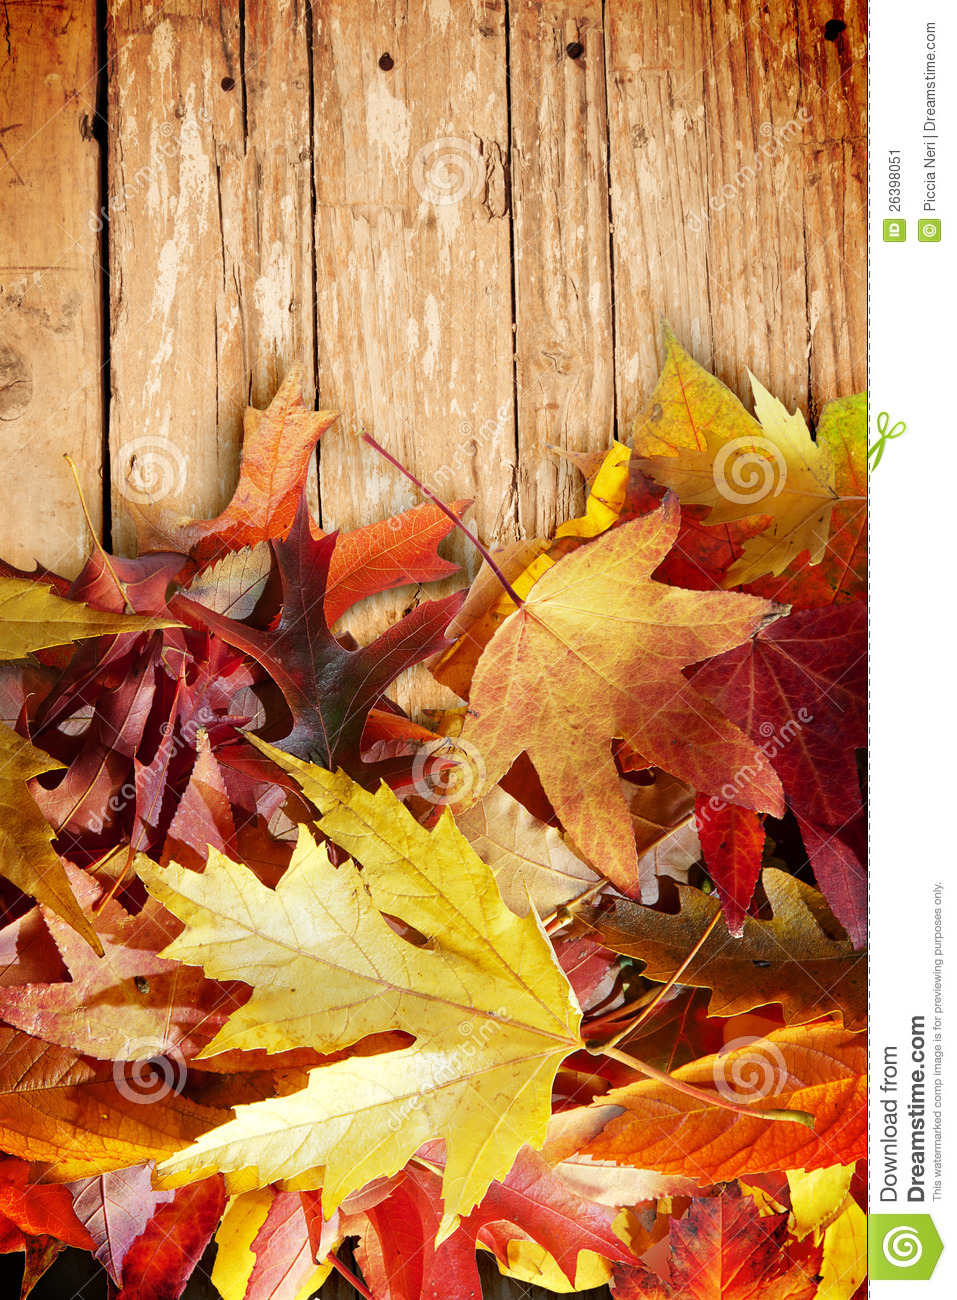 Rustic Fall Desktop Wallpaper Autumn Leaves On Wood Stock Image Image 26398051